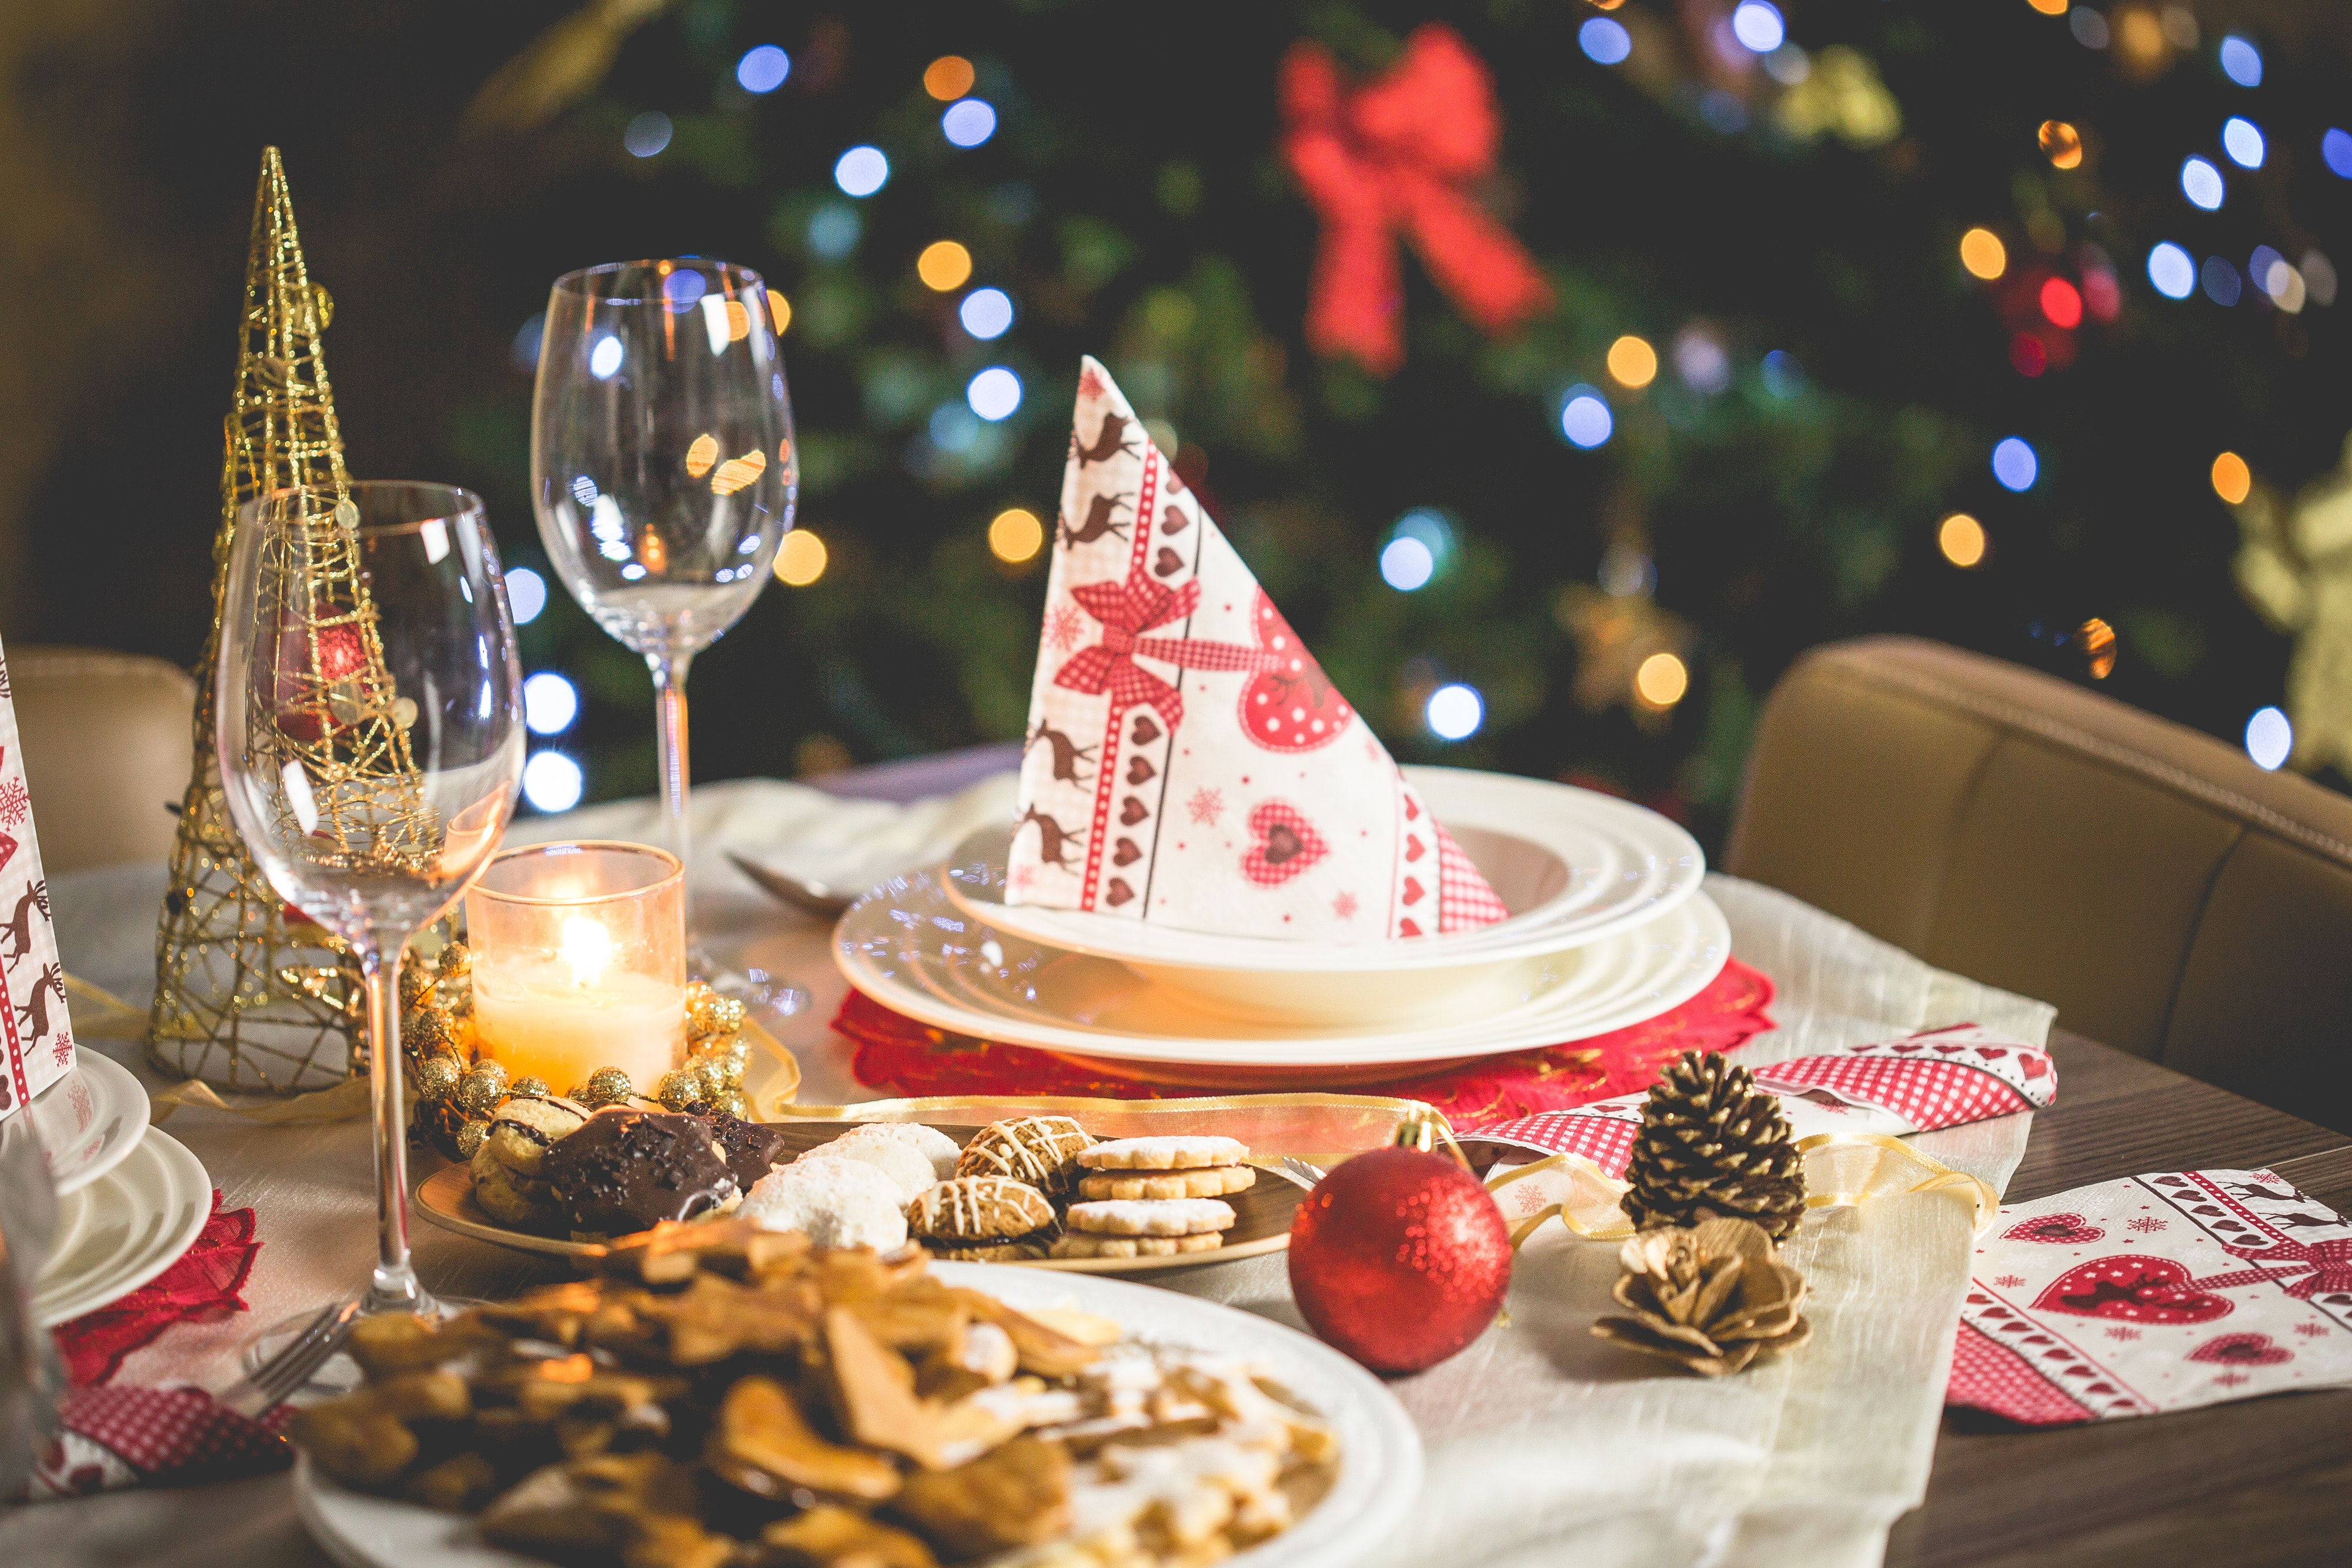 Intermittent fasting curbs weight gain during the holidays